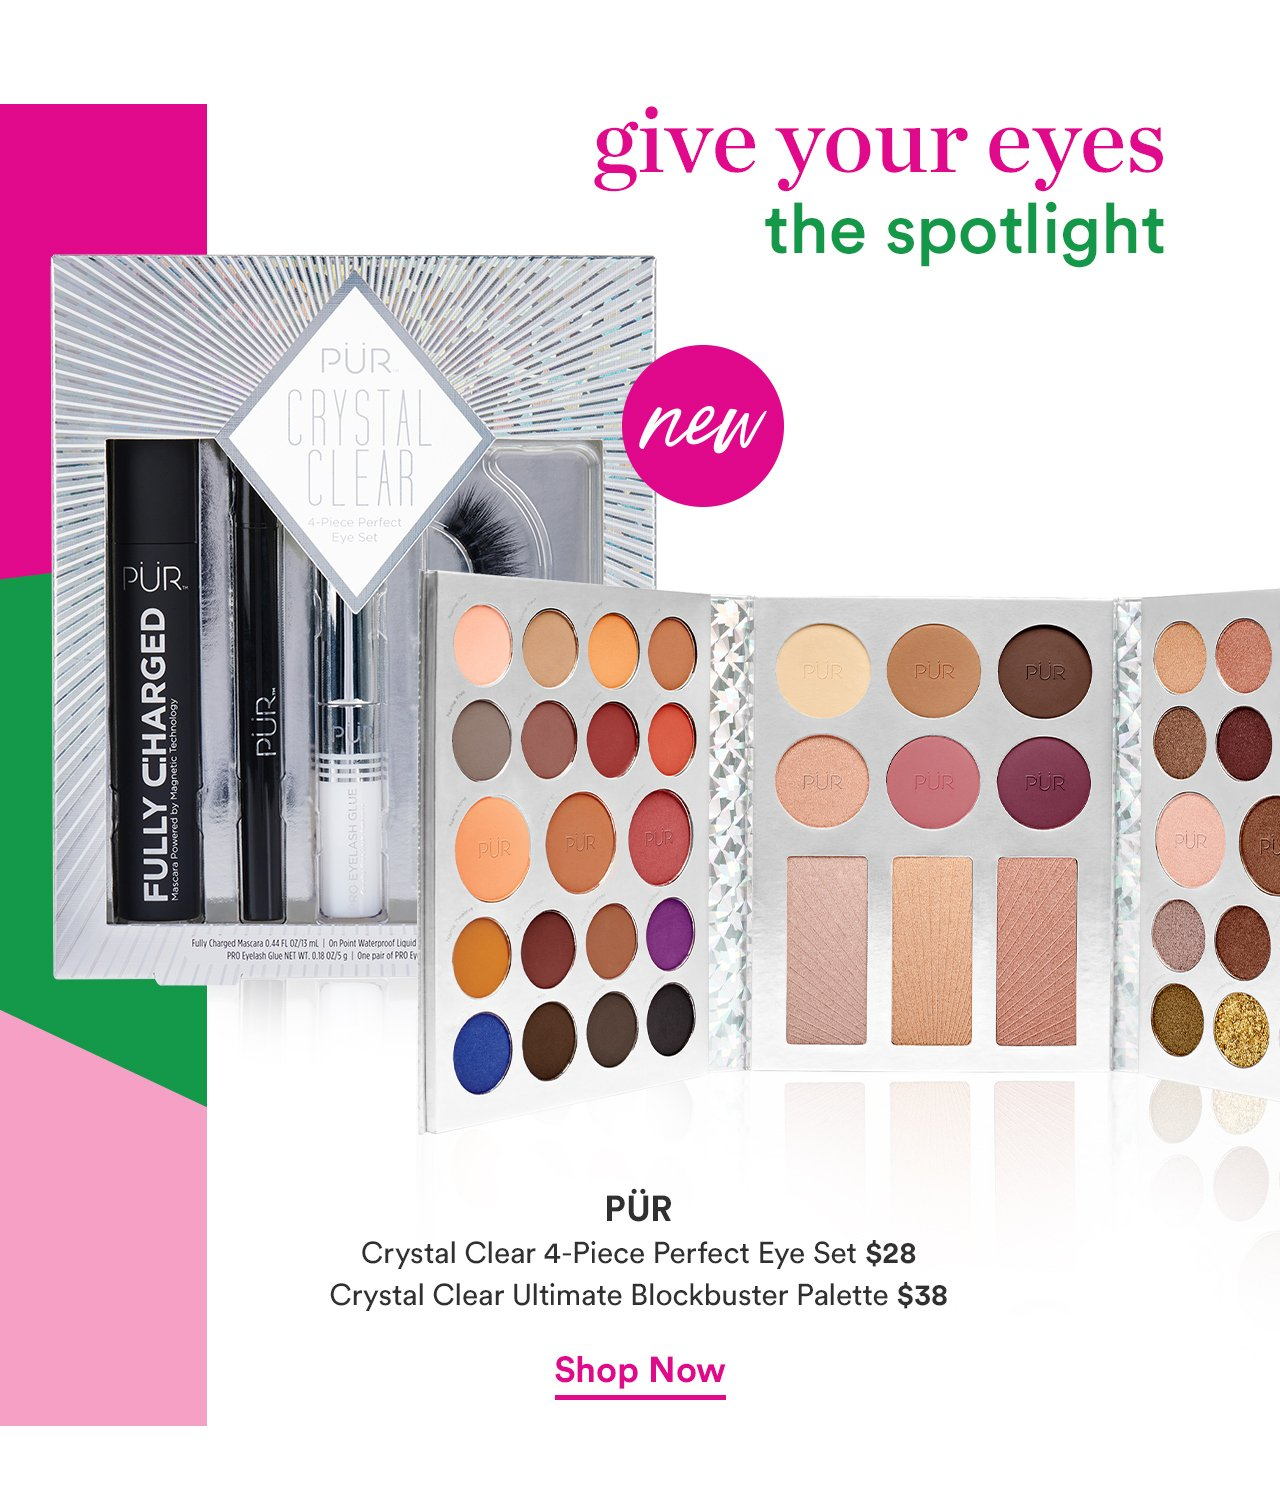 PUR | Crystal Clear 4-Piece Perfect Eye Set $28 | Crystal Clear Ultimate Blockbuster Palette $38